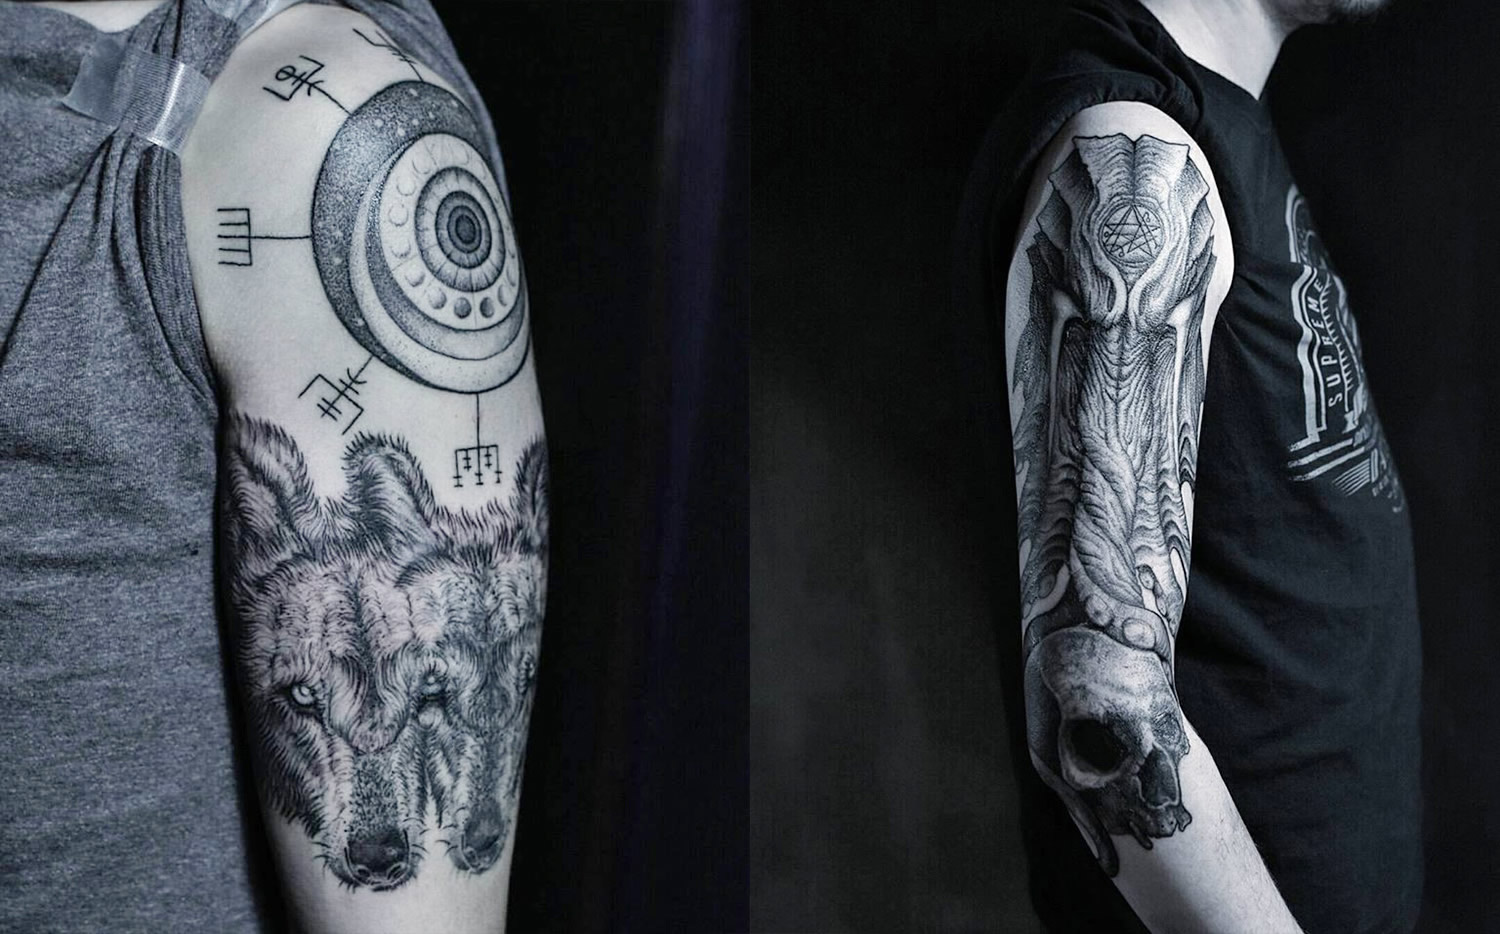 esoteric tattoos on arms